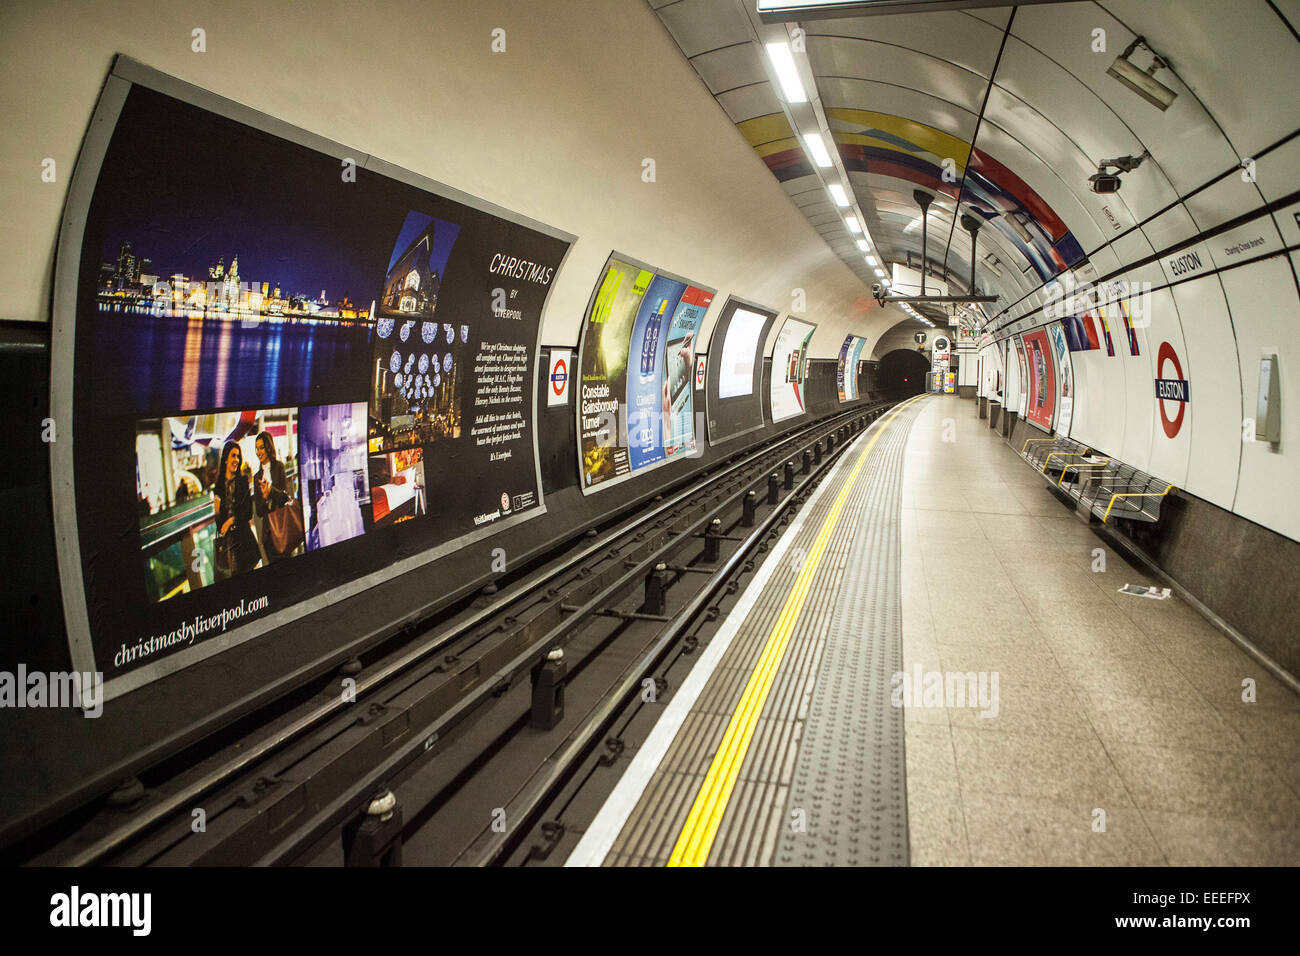 The Southbound Platform platform of the Northern Line, Charing Cross Branch, Euston Station. - Stock Image